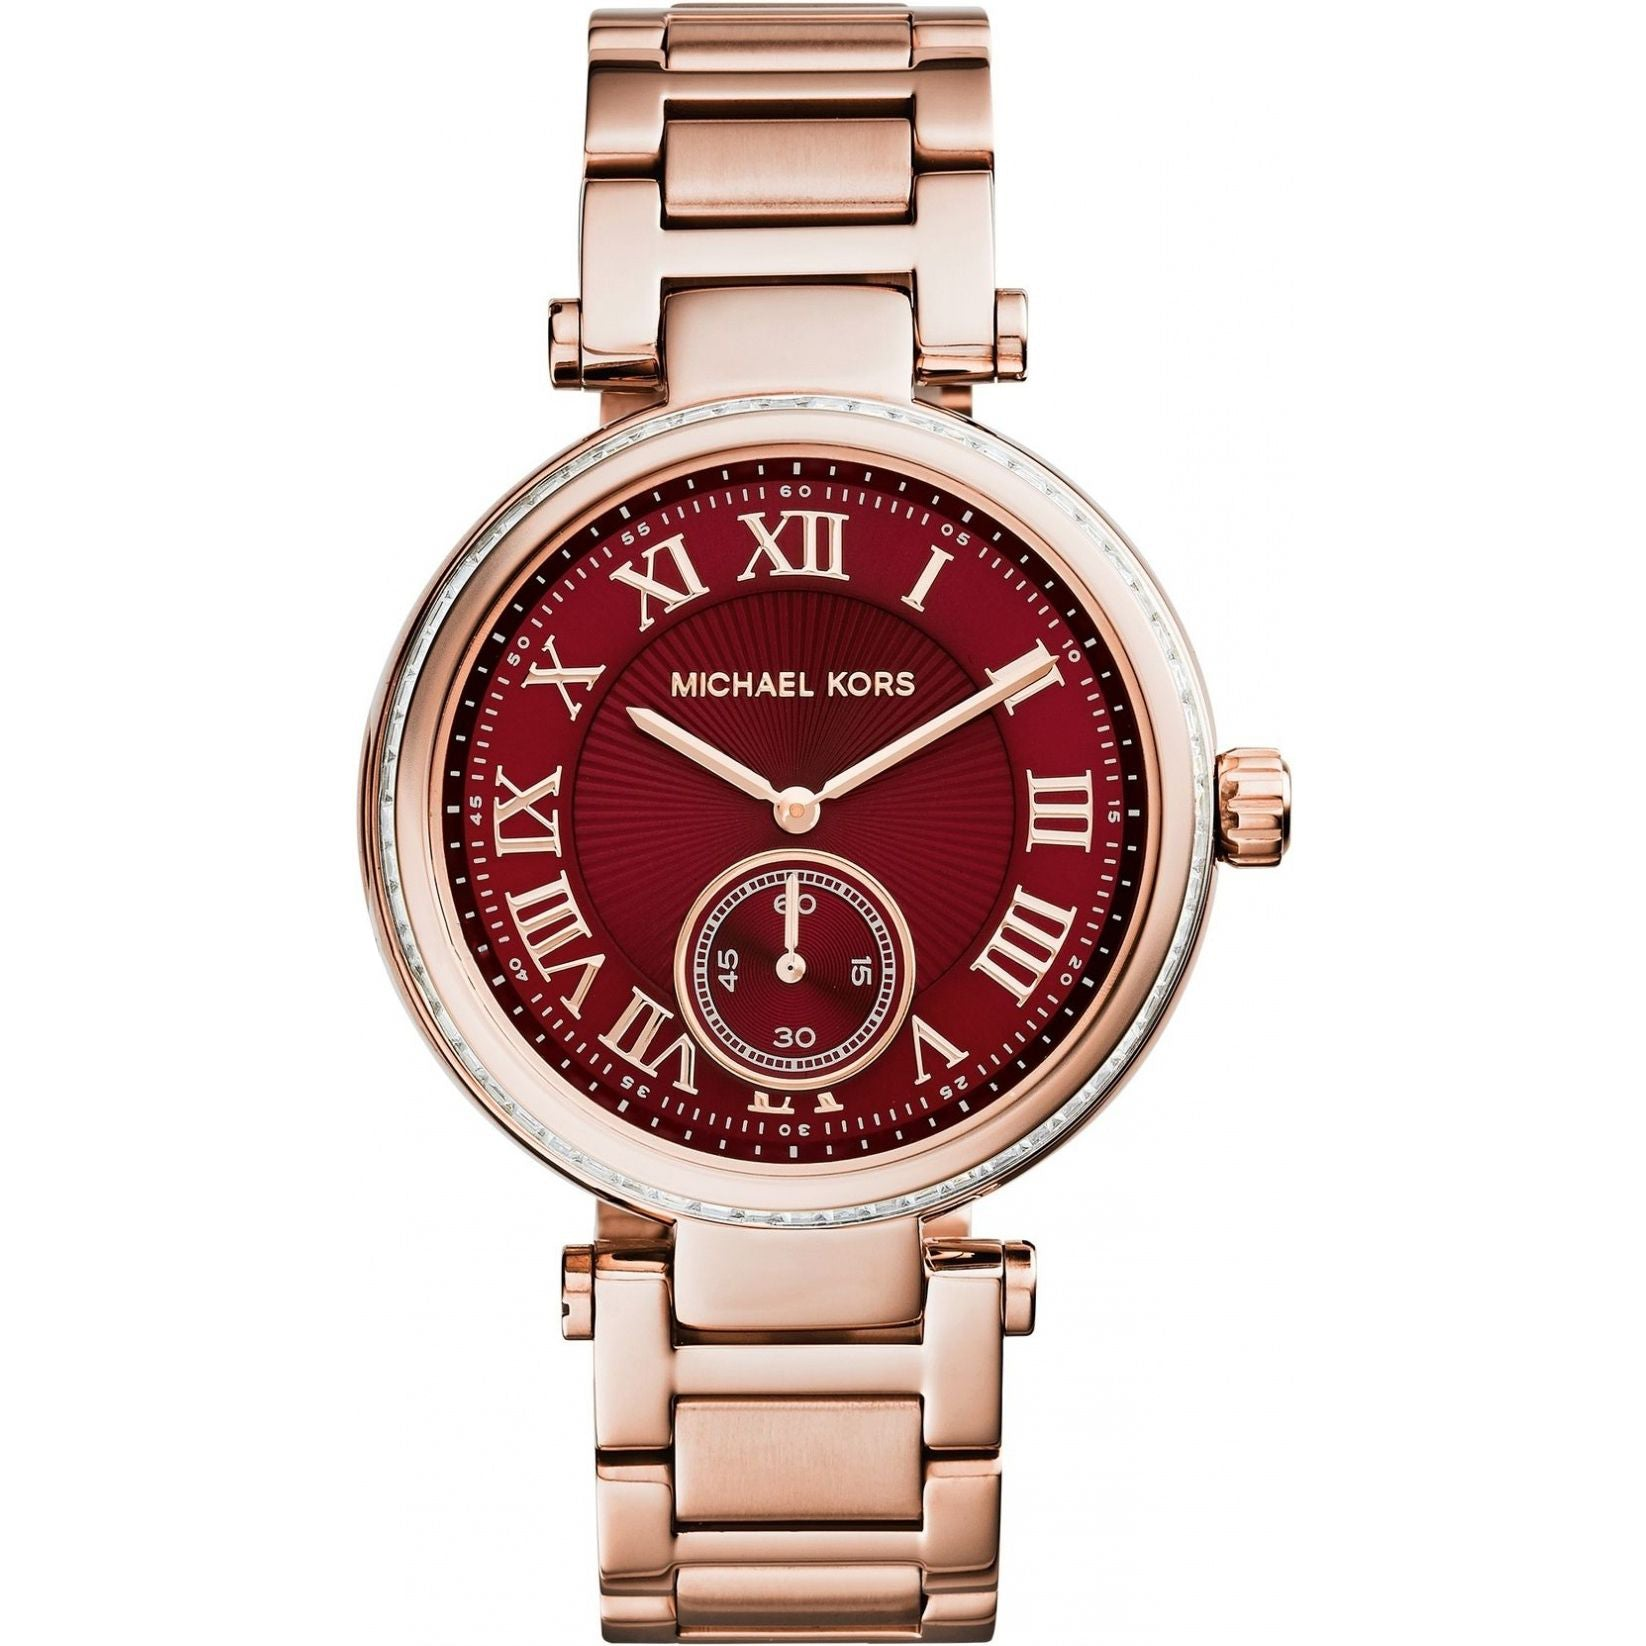 Michael Kors Watch MK6086